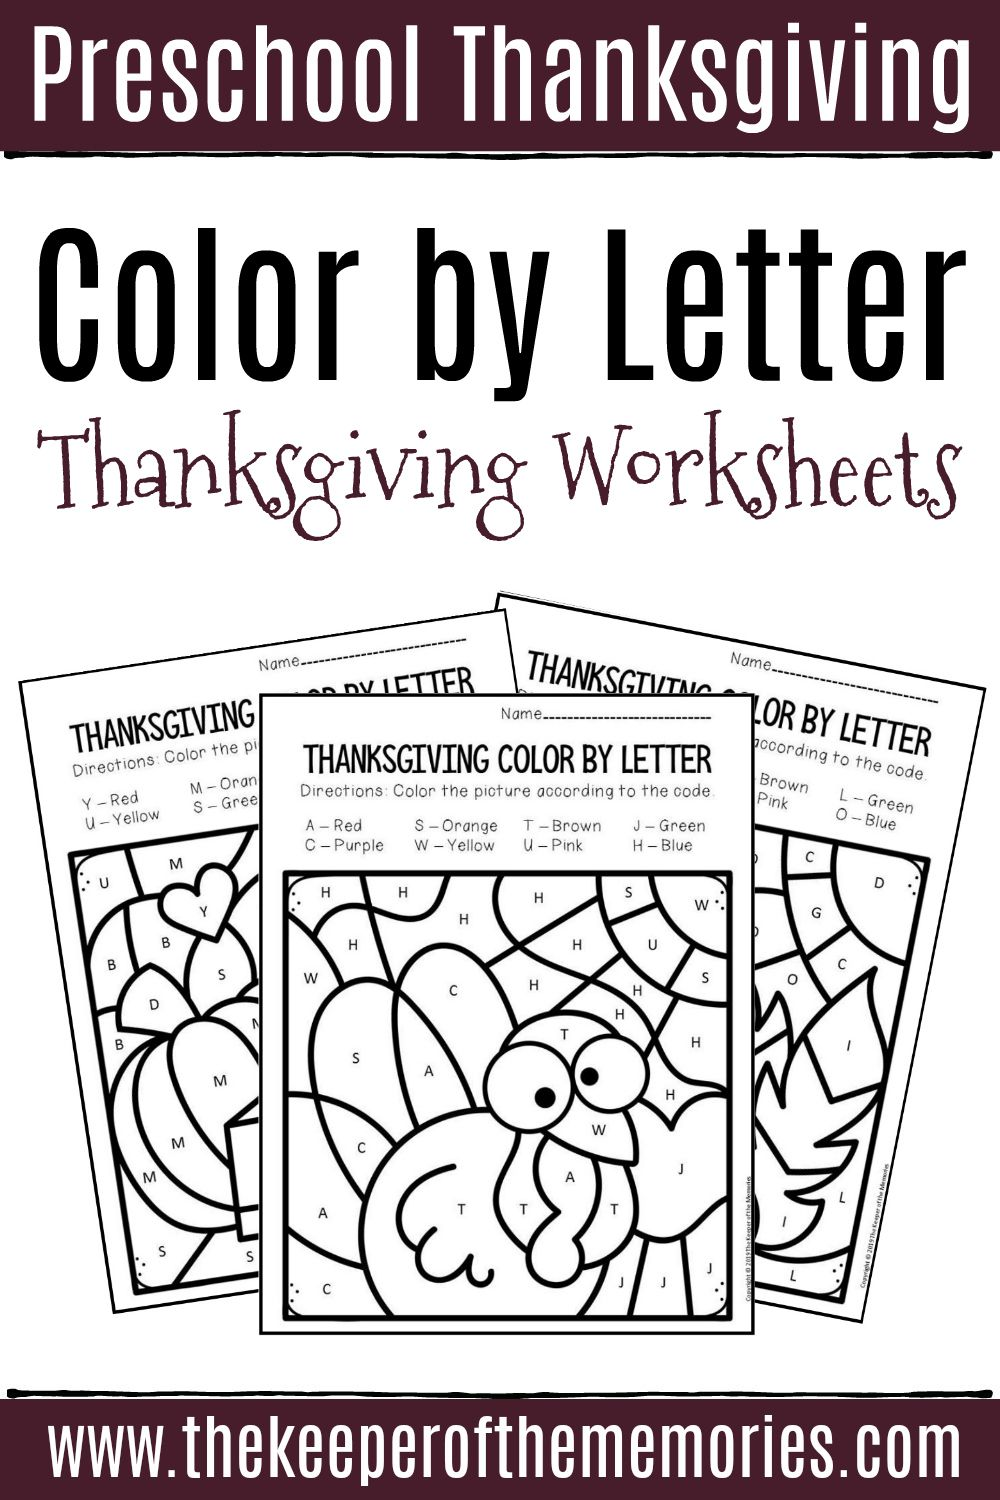 Color By Letter Thanksgiving Preschool Worksheets Thanksgiving Worksheets Preschool Worksheets Thanksgiving Preschool [ 1500 x 1000 Pixel ]